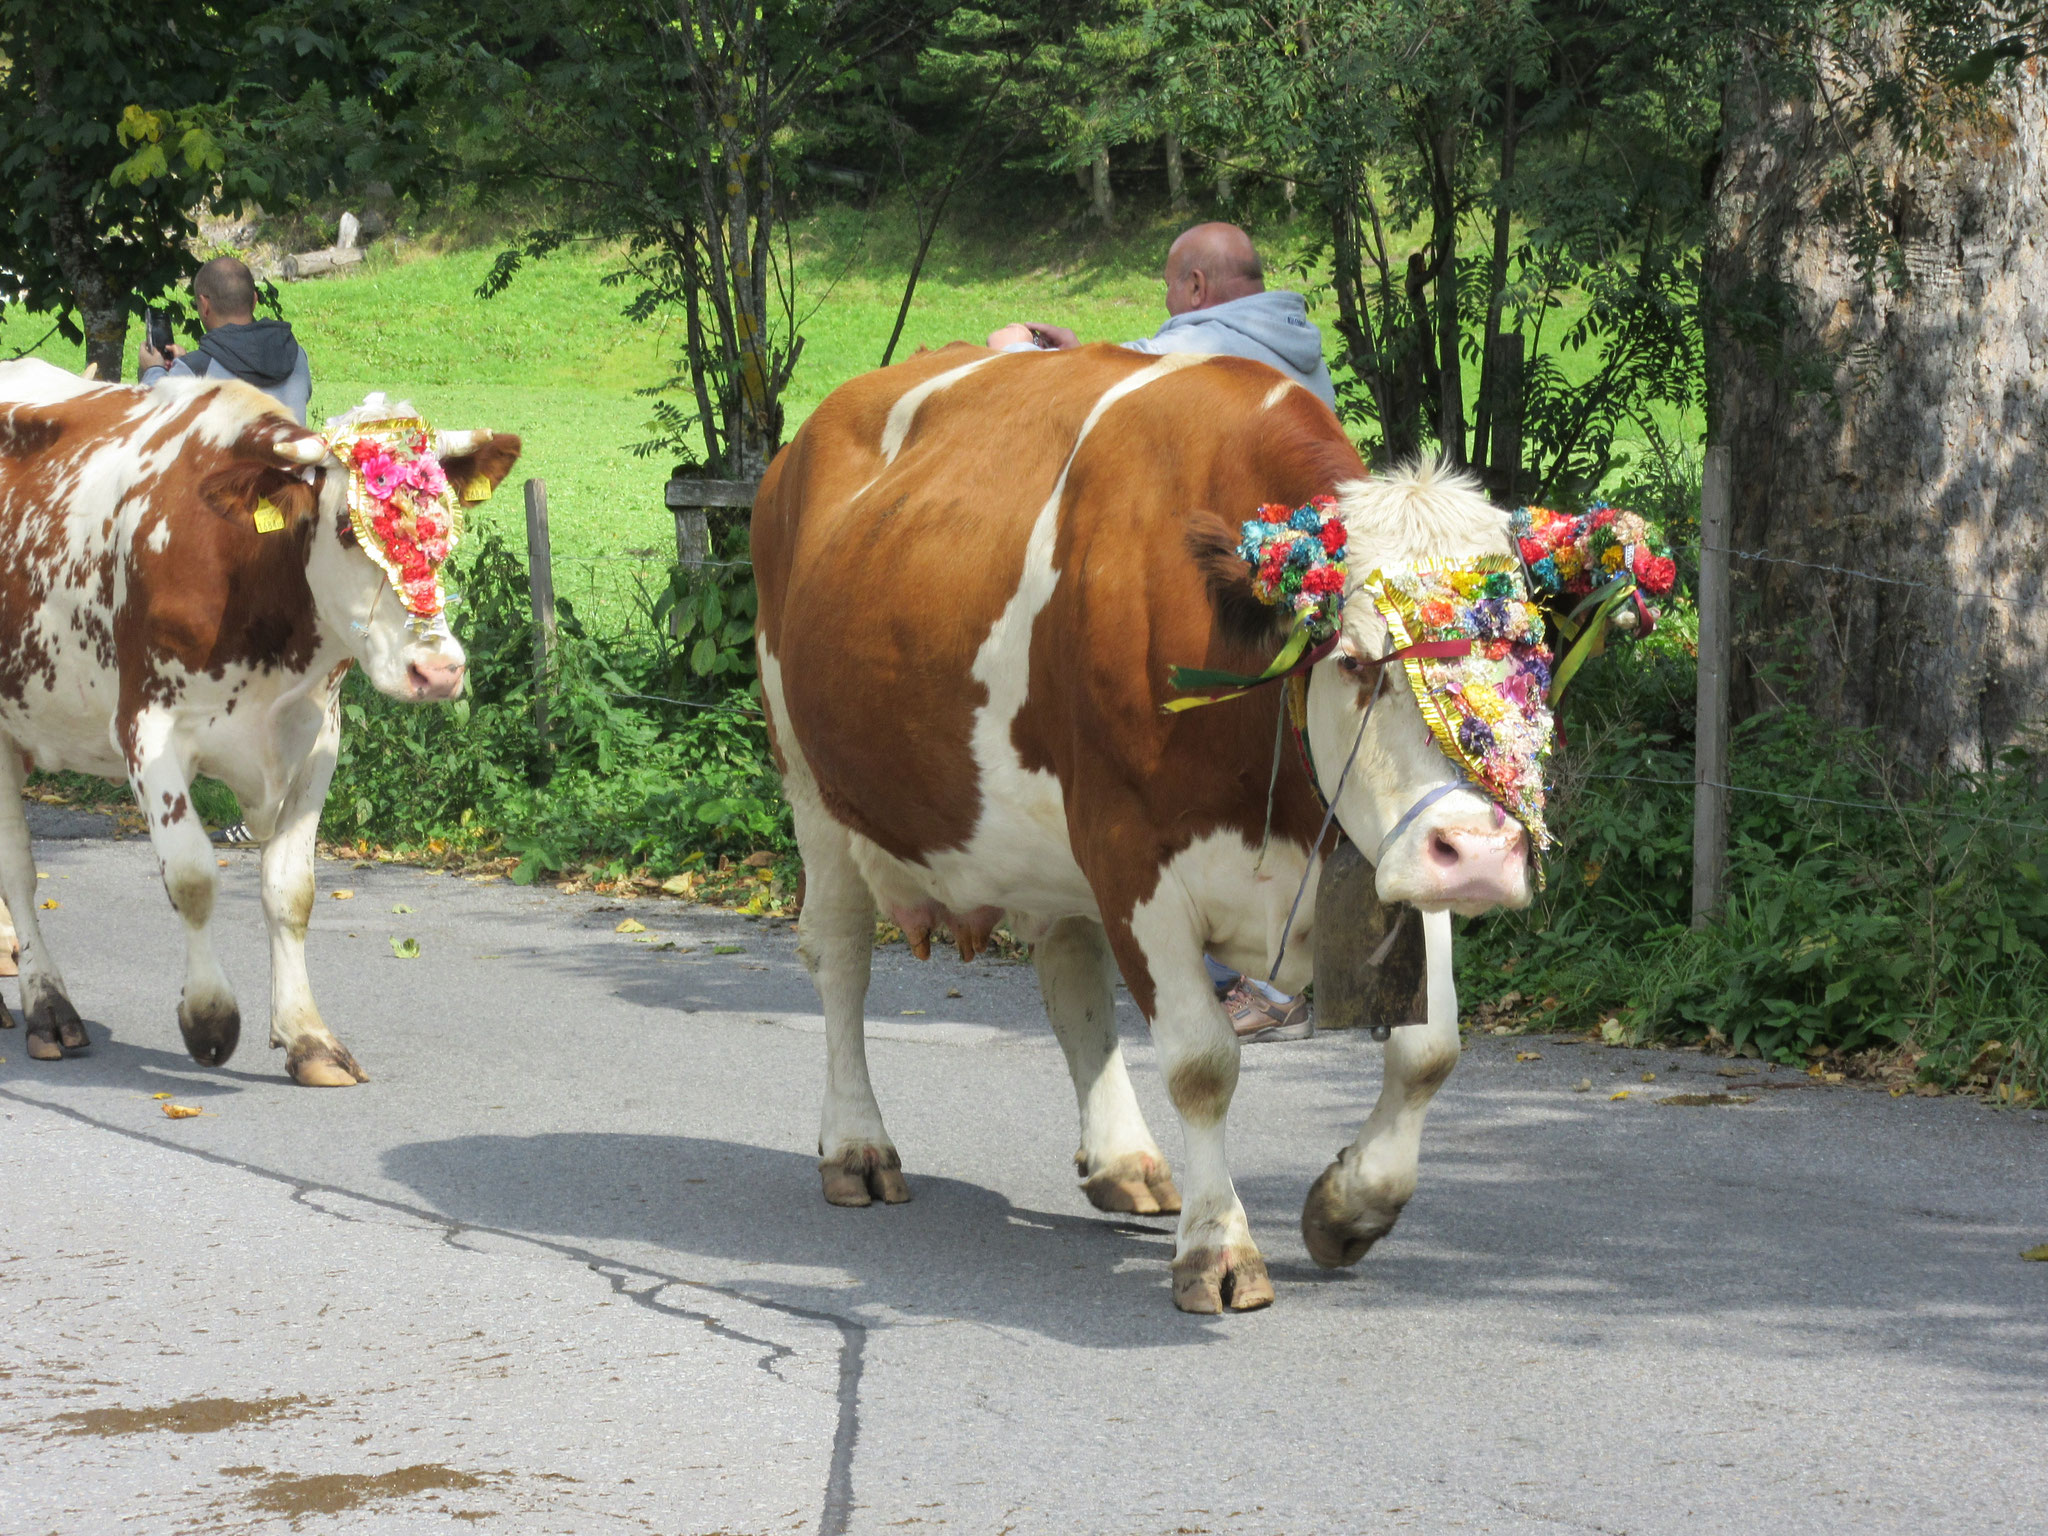 """Almabtrieb"" - bringing the cows down from the high pastures in autumn"